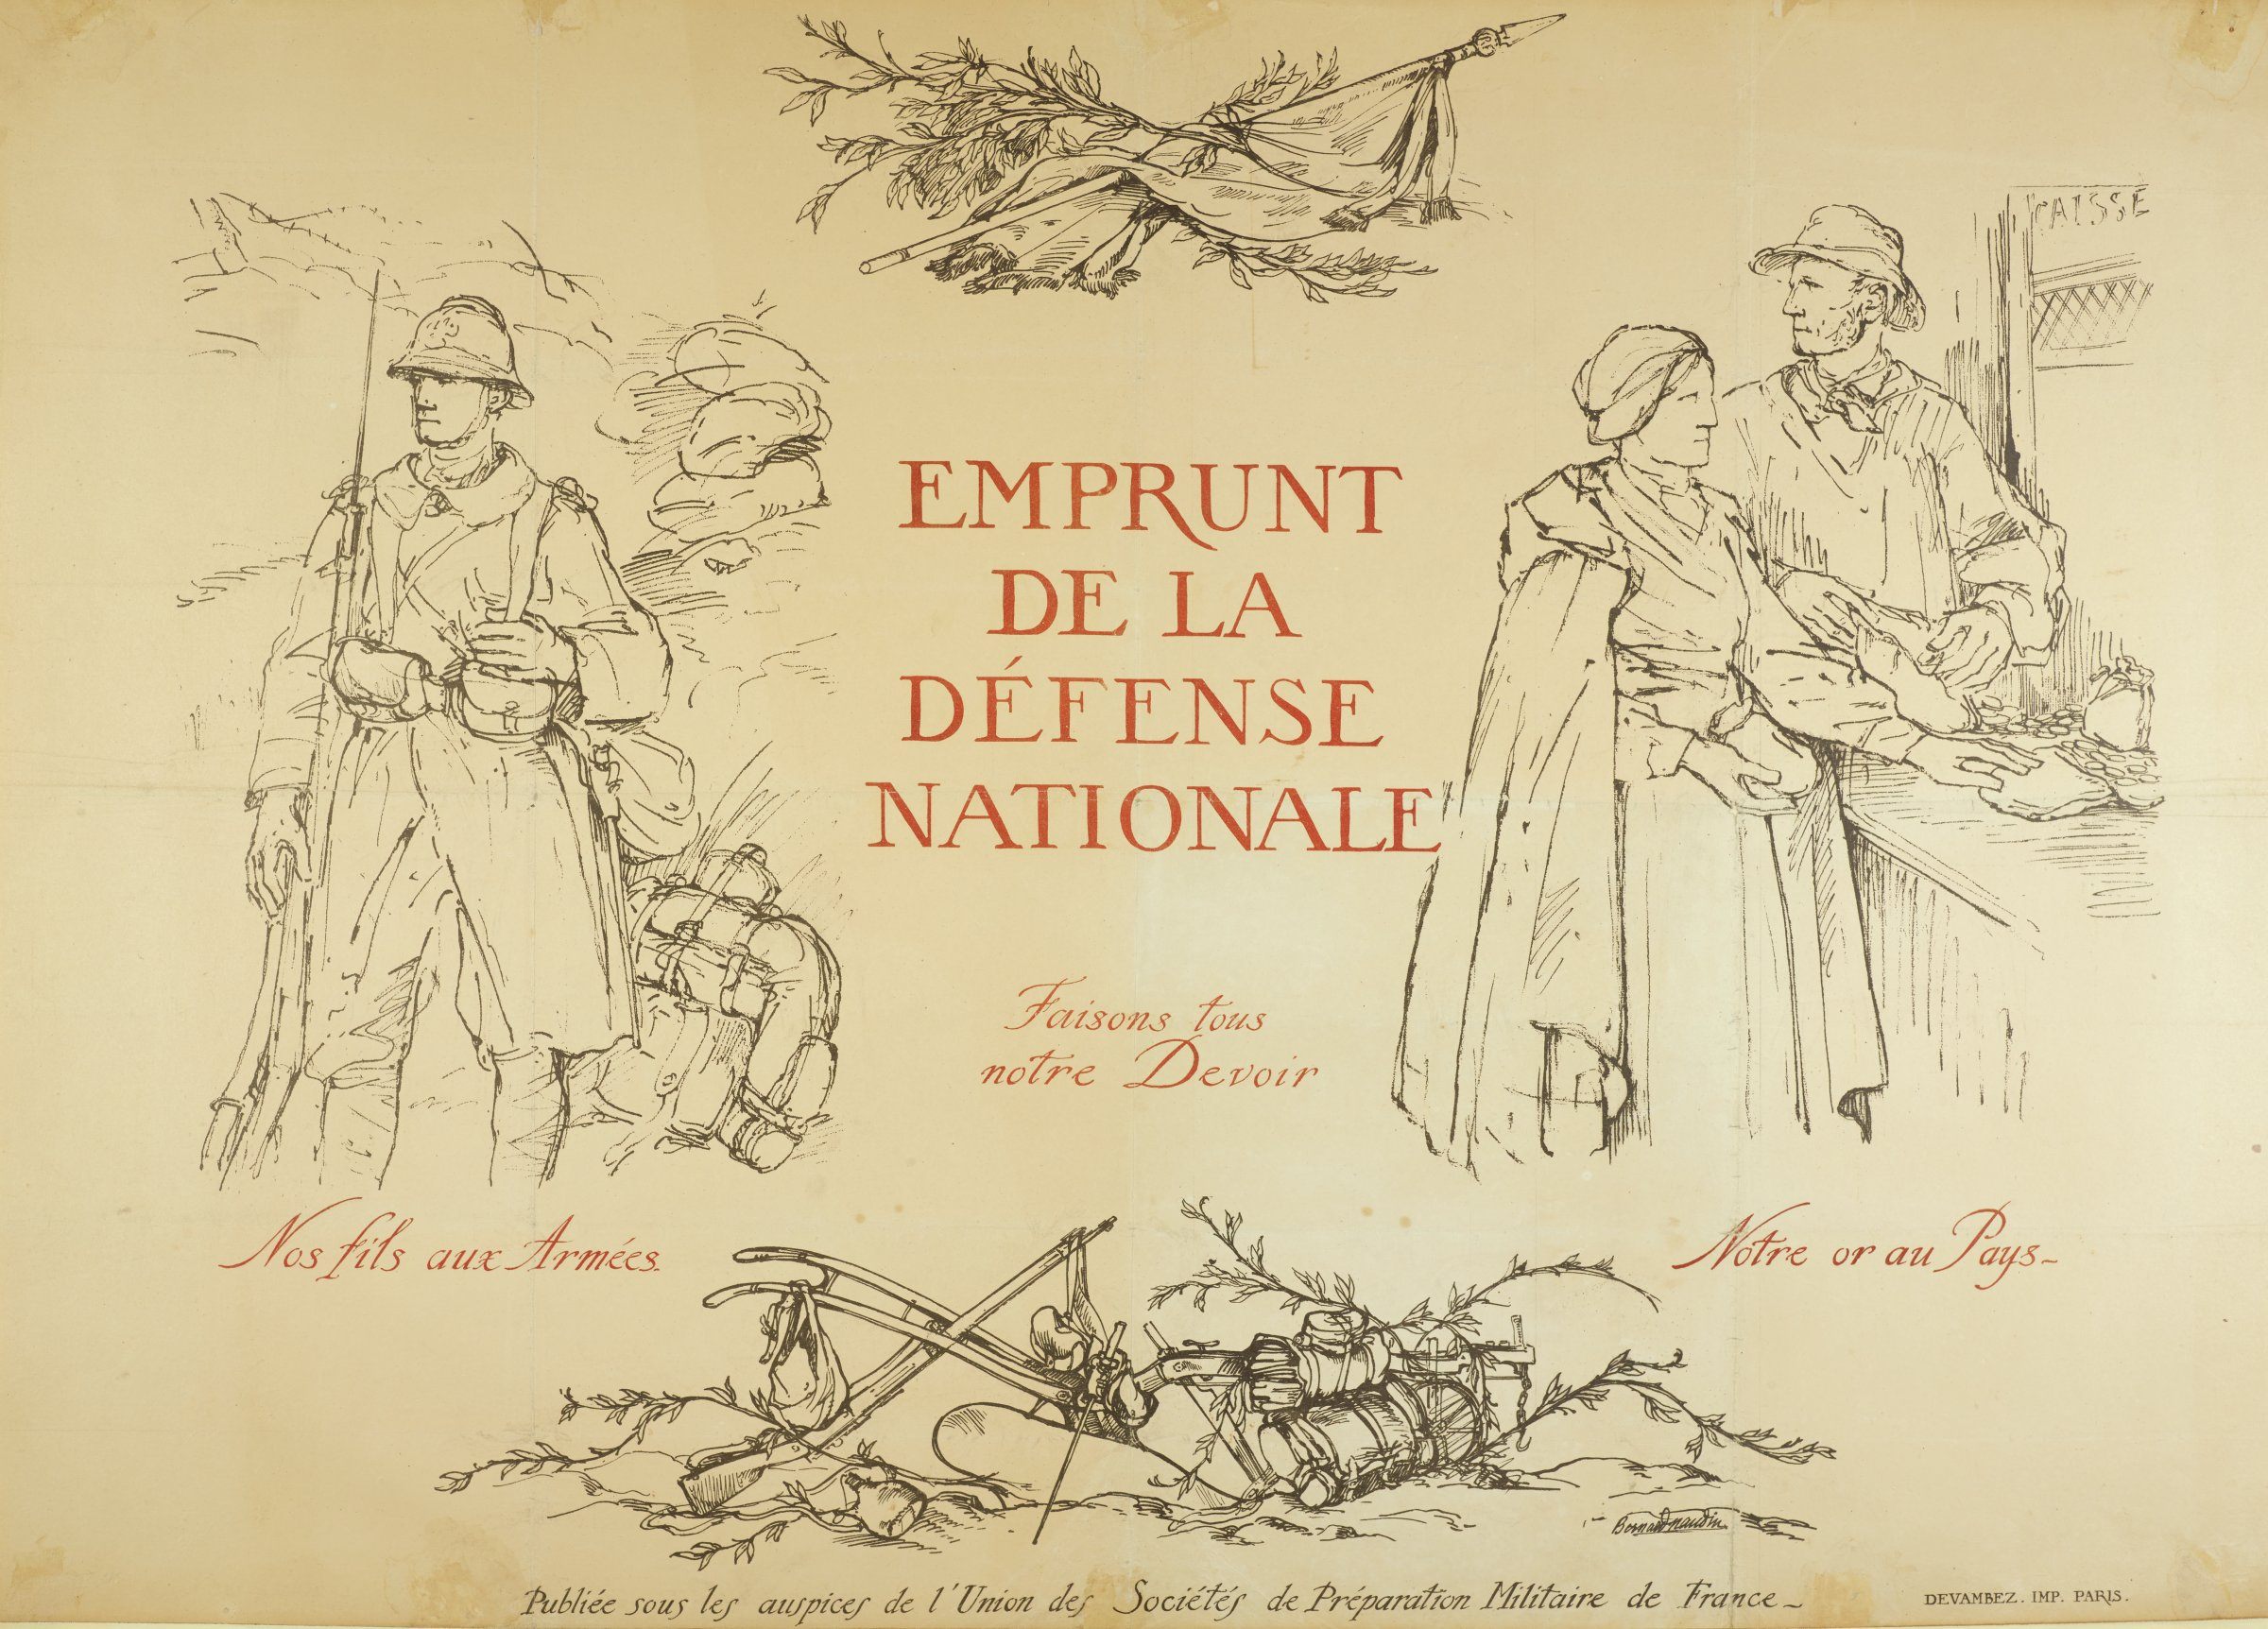 Four images are shown within a largely void space. On the left, a soldier stands with a rifle propped against his shoulder. On the right, a man and woman place small pouches on a counter as the man looks back over his shoulder. On the top, a flag hangs over a tree branch. On the bottom, various weapons and bundles lay between plant life.